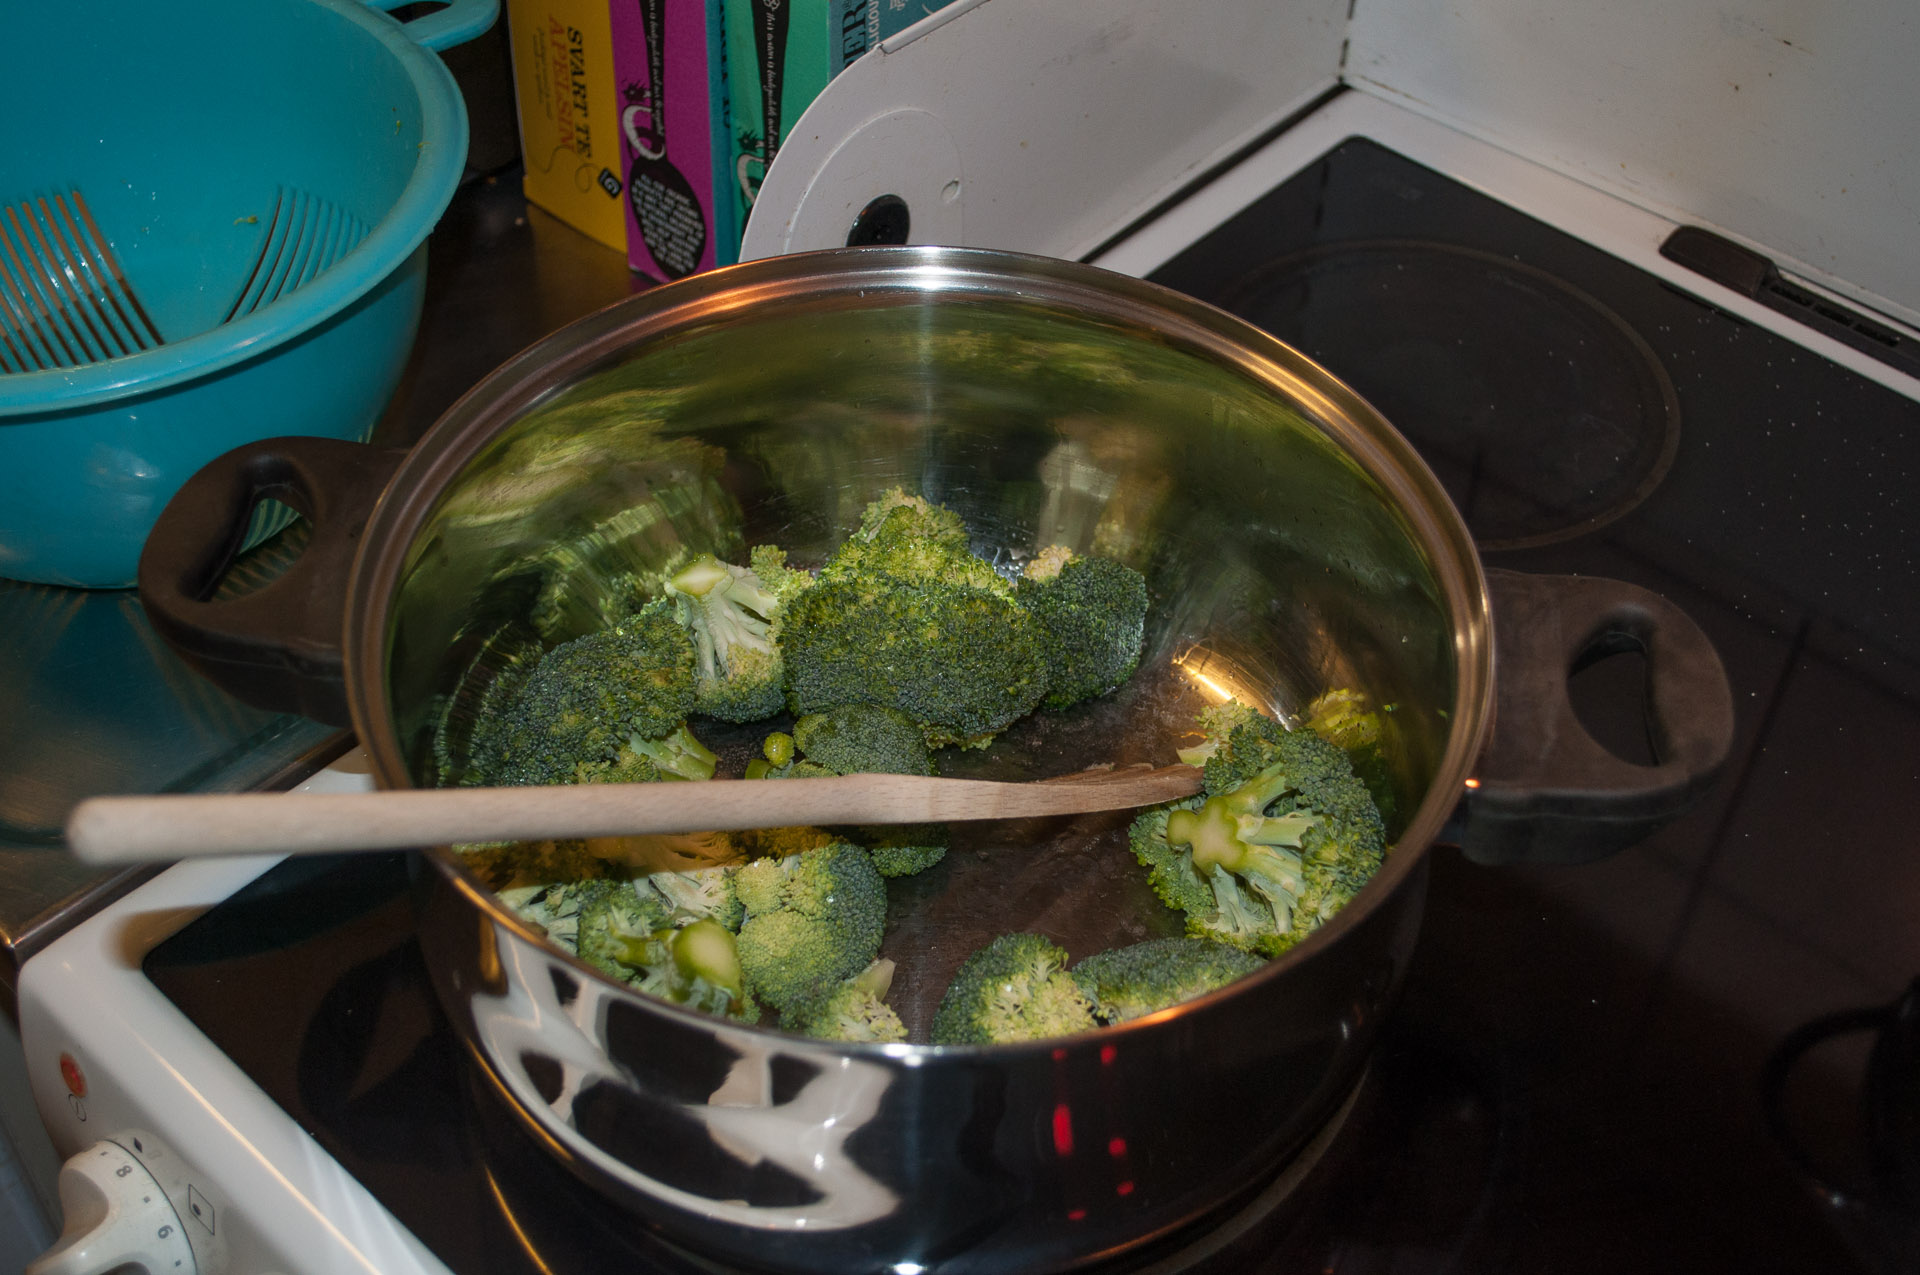 Searing broccoli